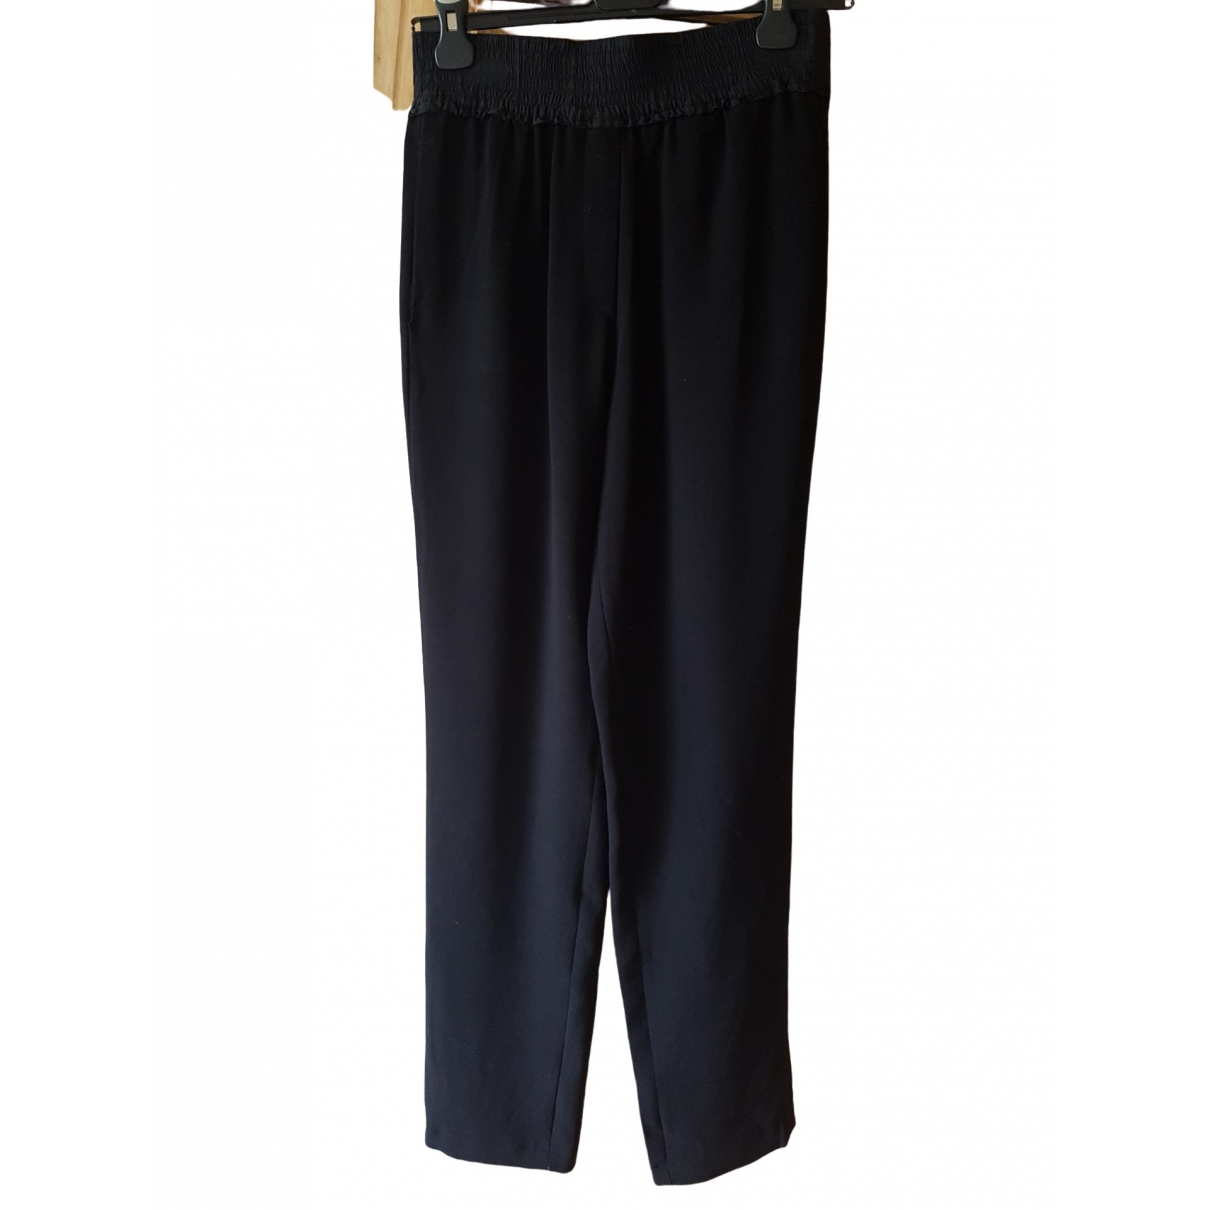 Sandro \N Black Trousers for Women 38 FR